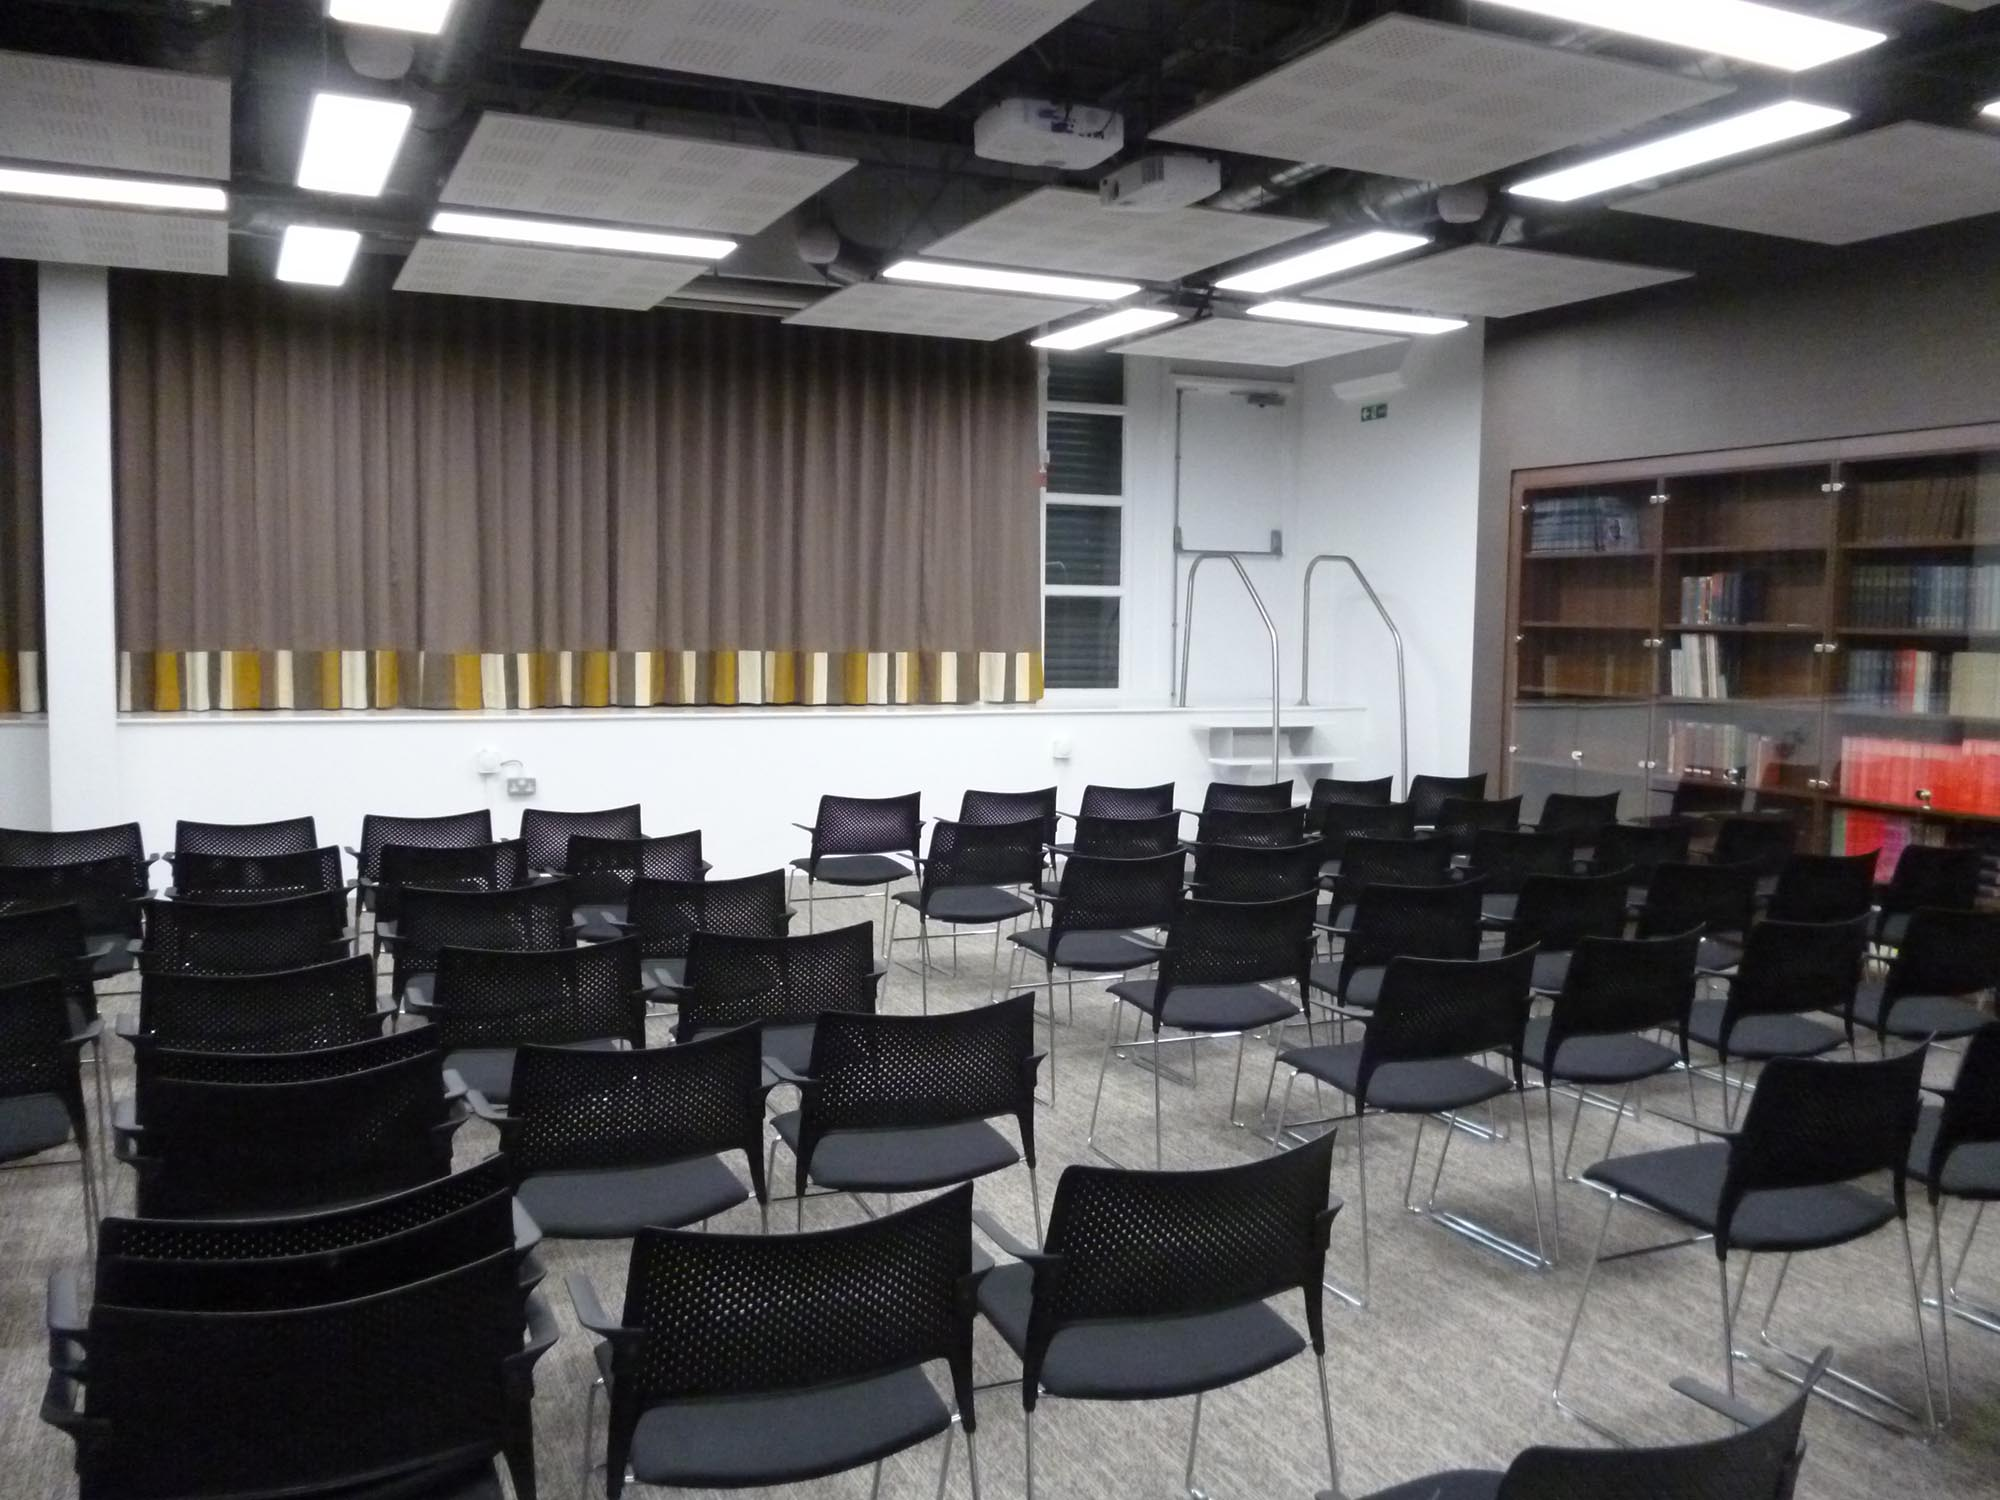 The Physiological Society Auditorium